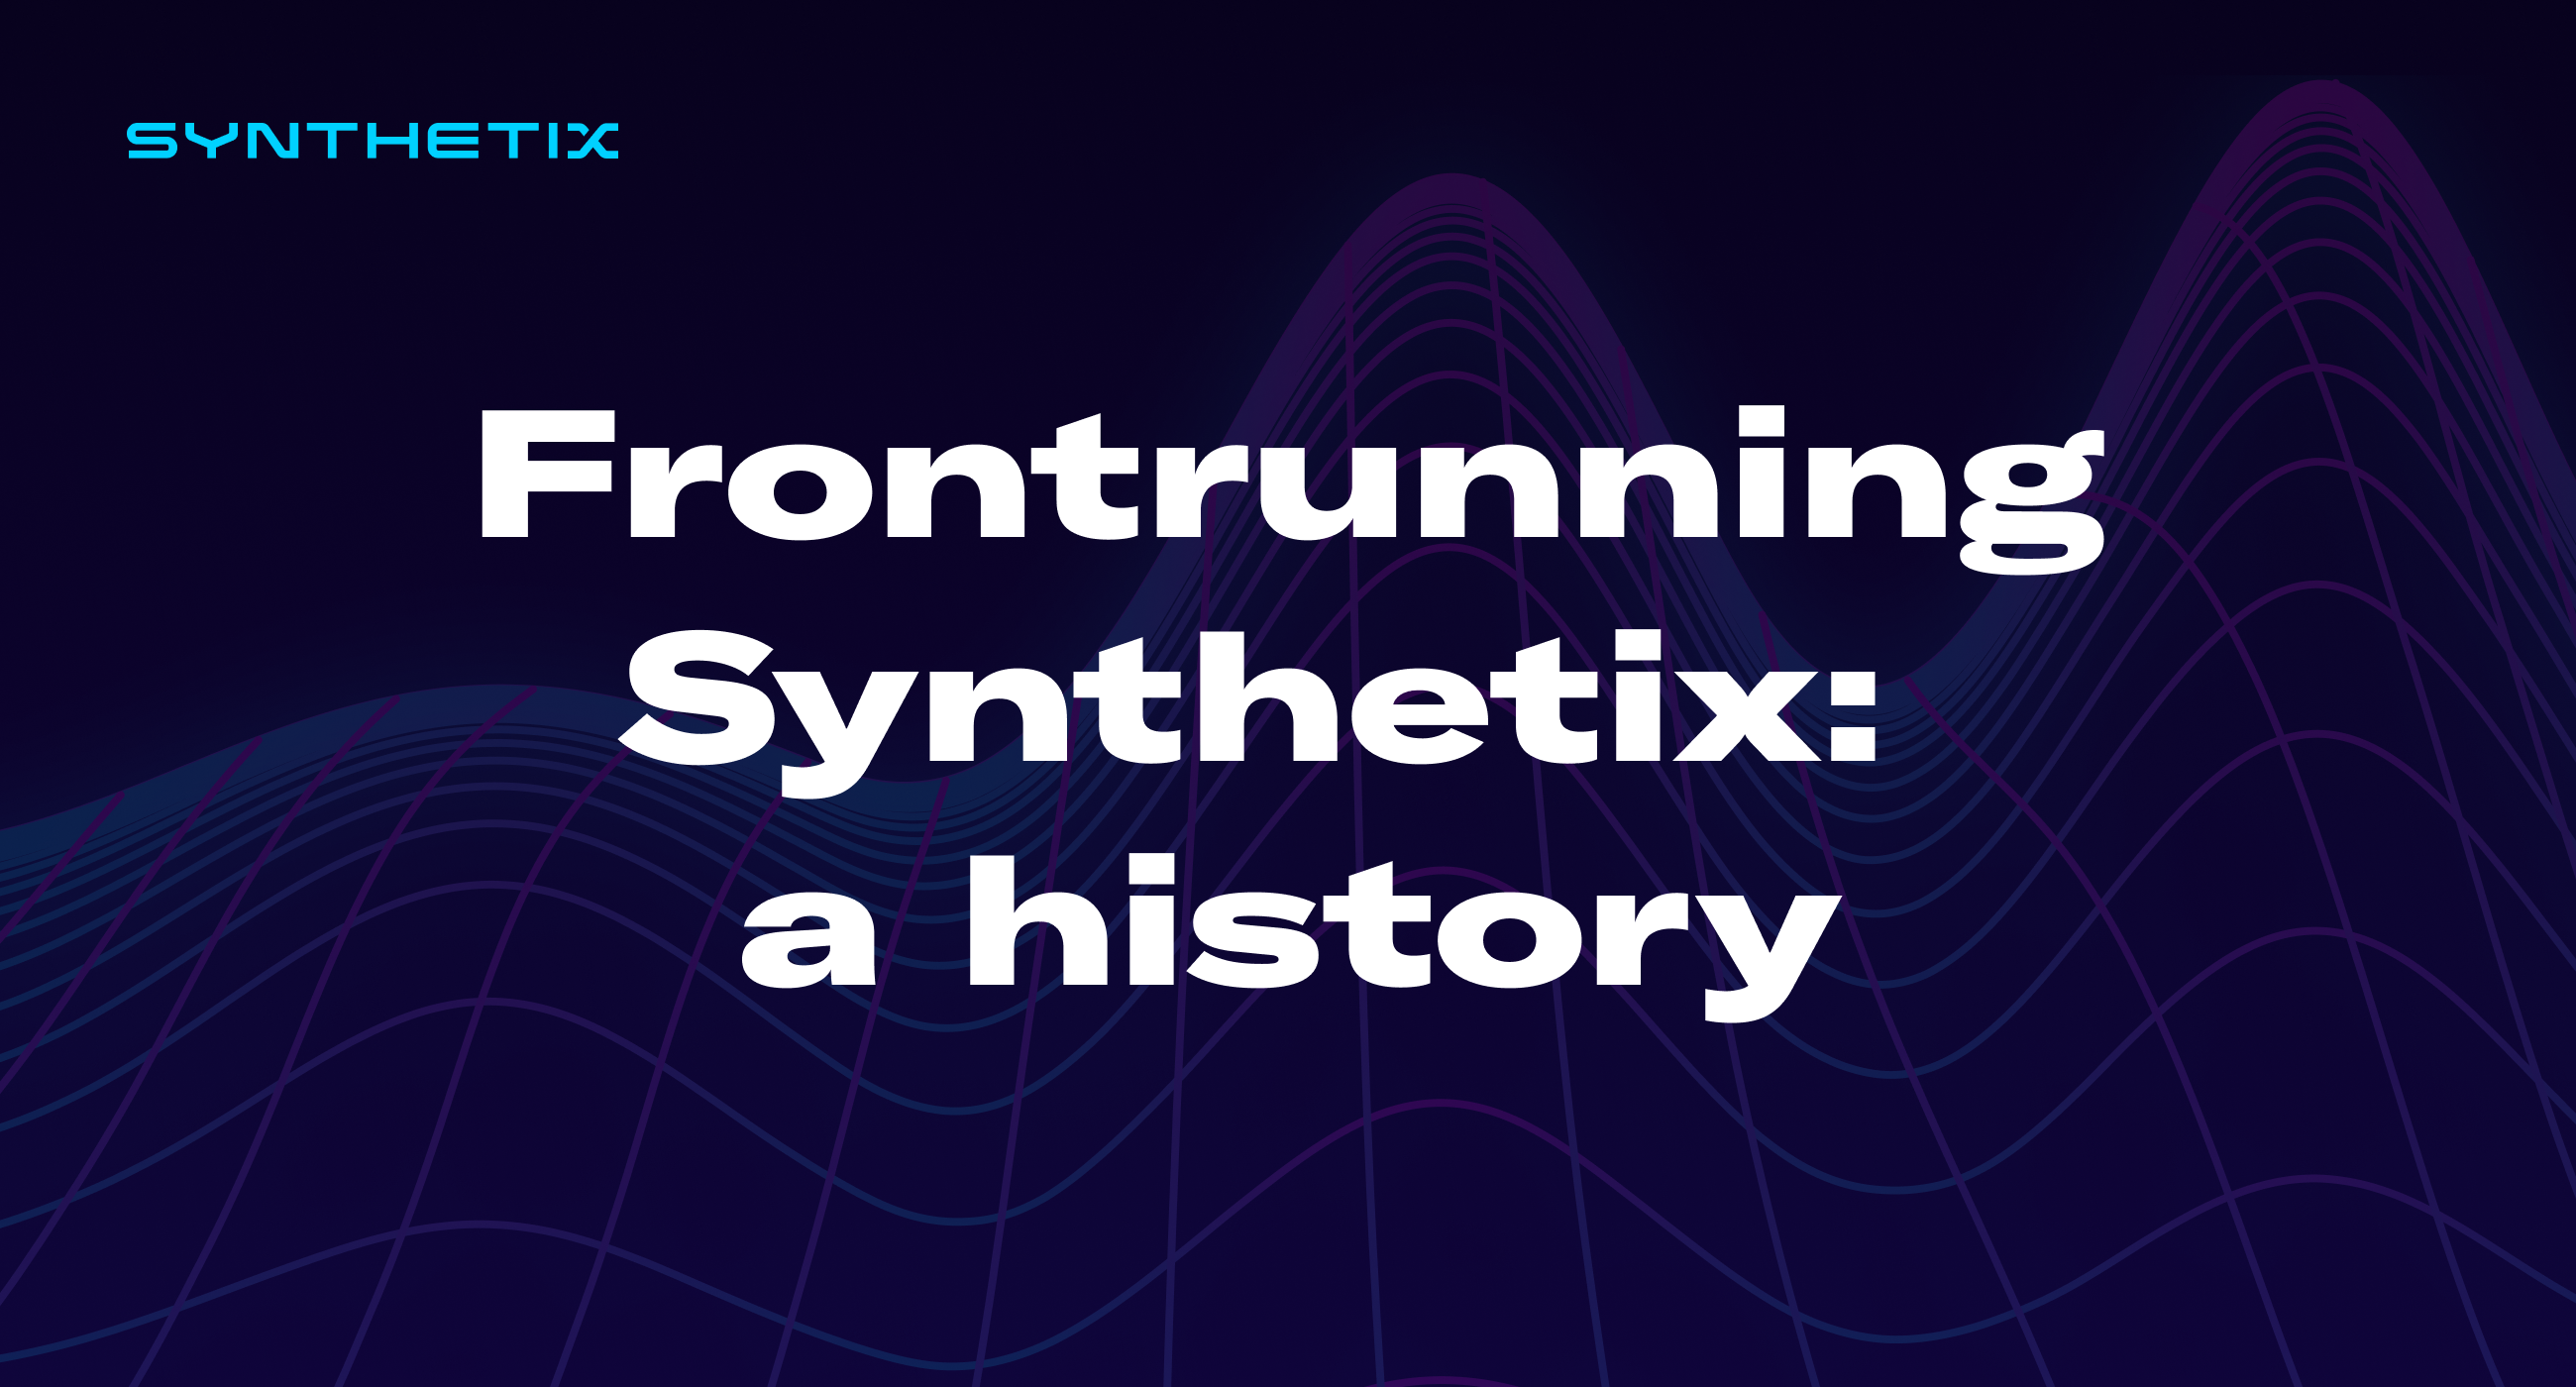 Frontrunning Synthetix: a history